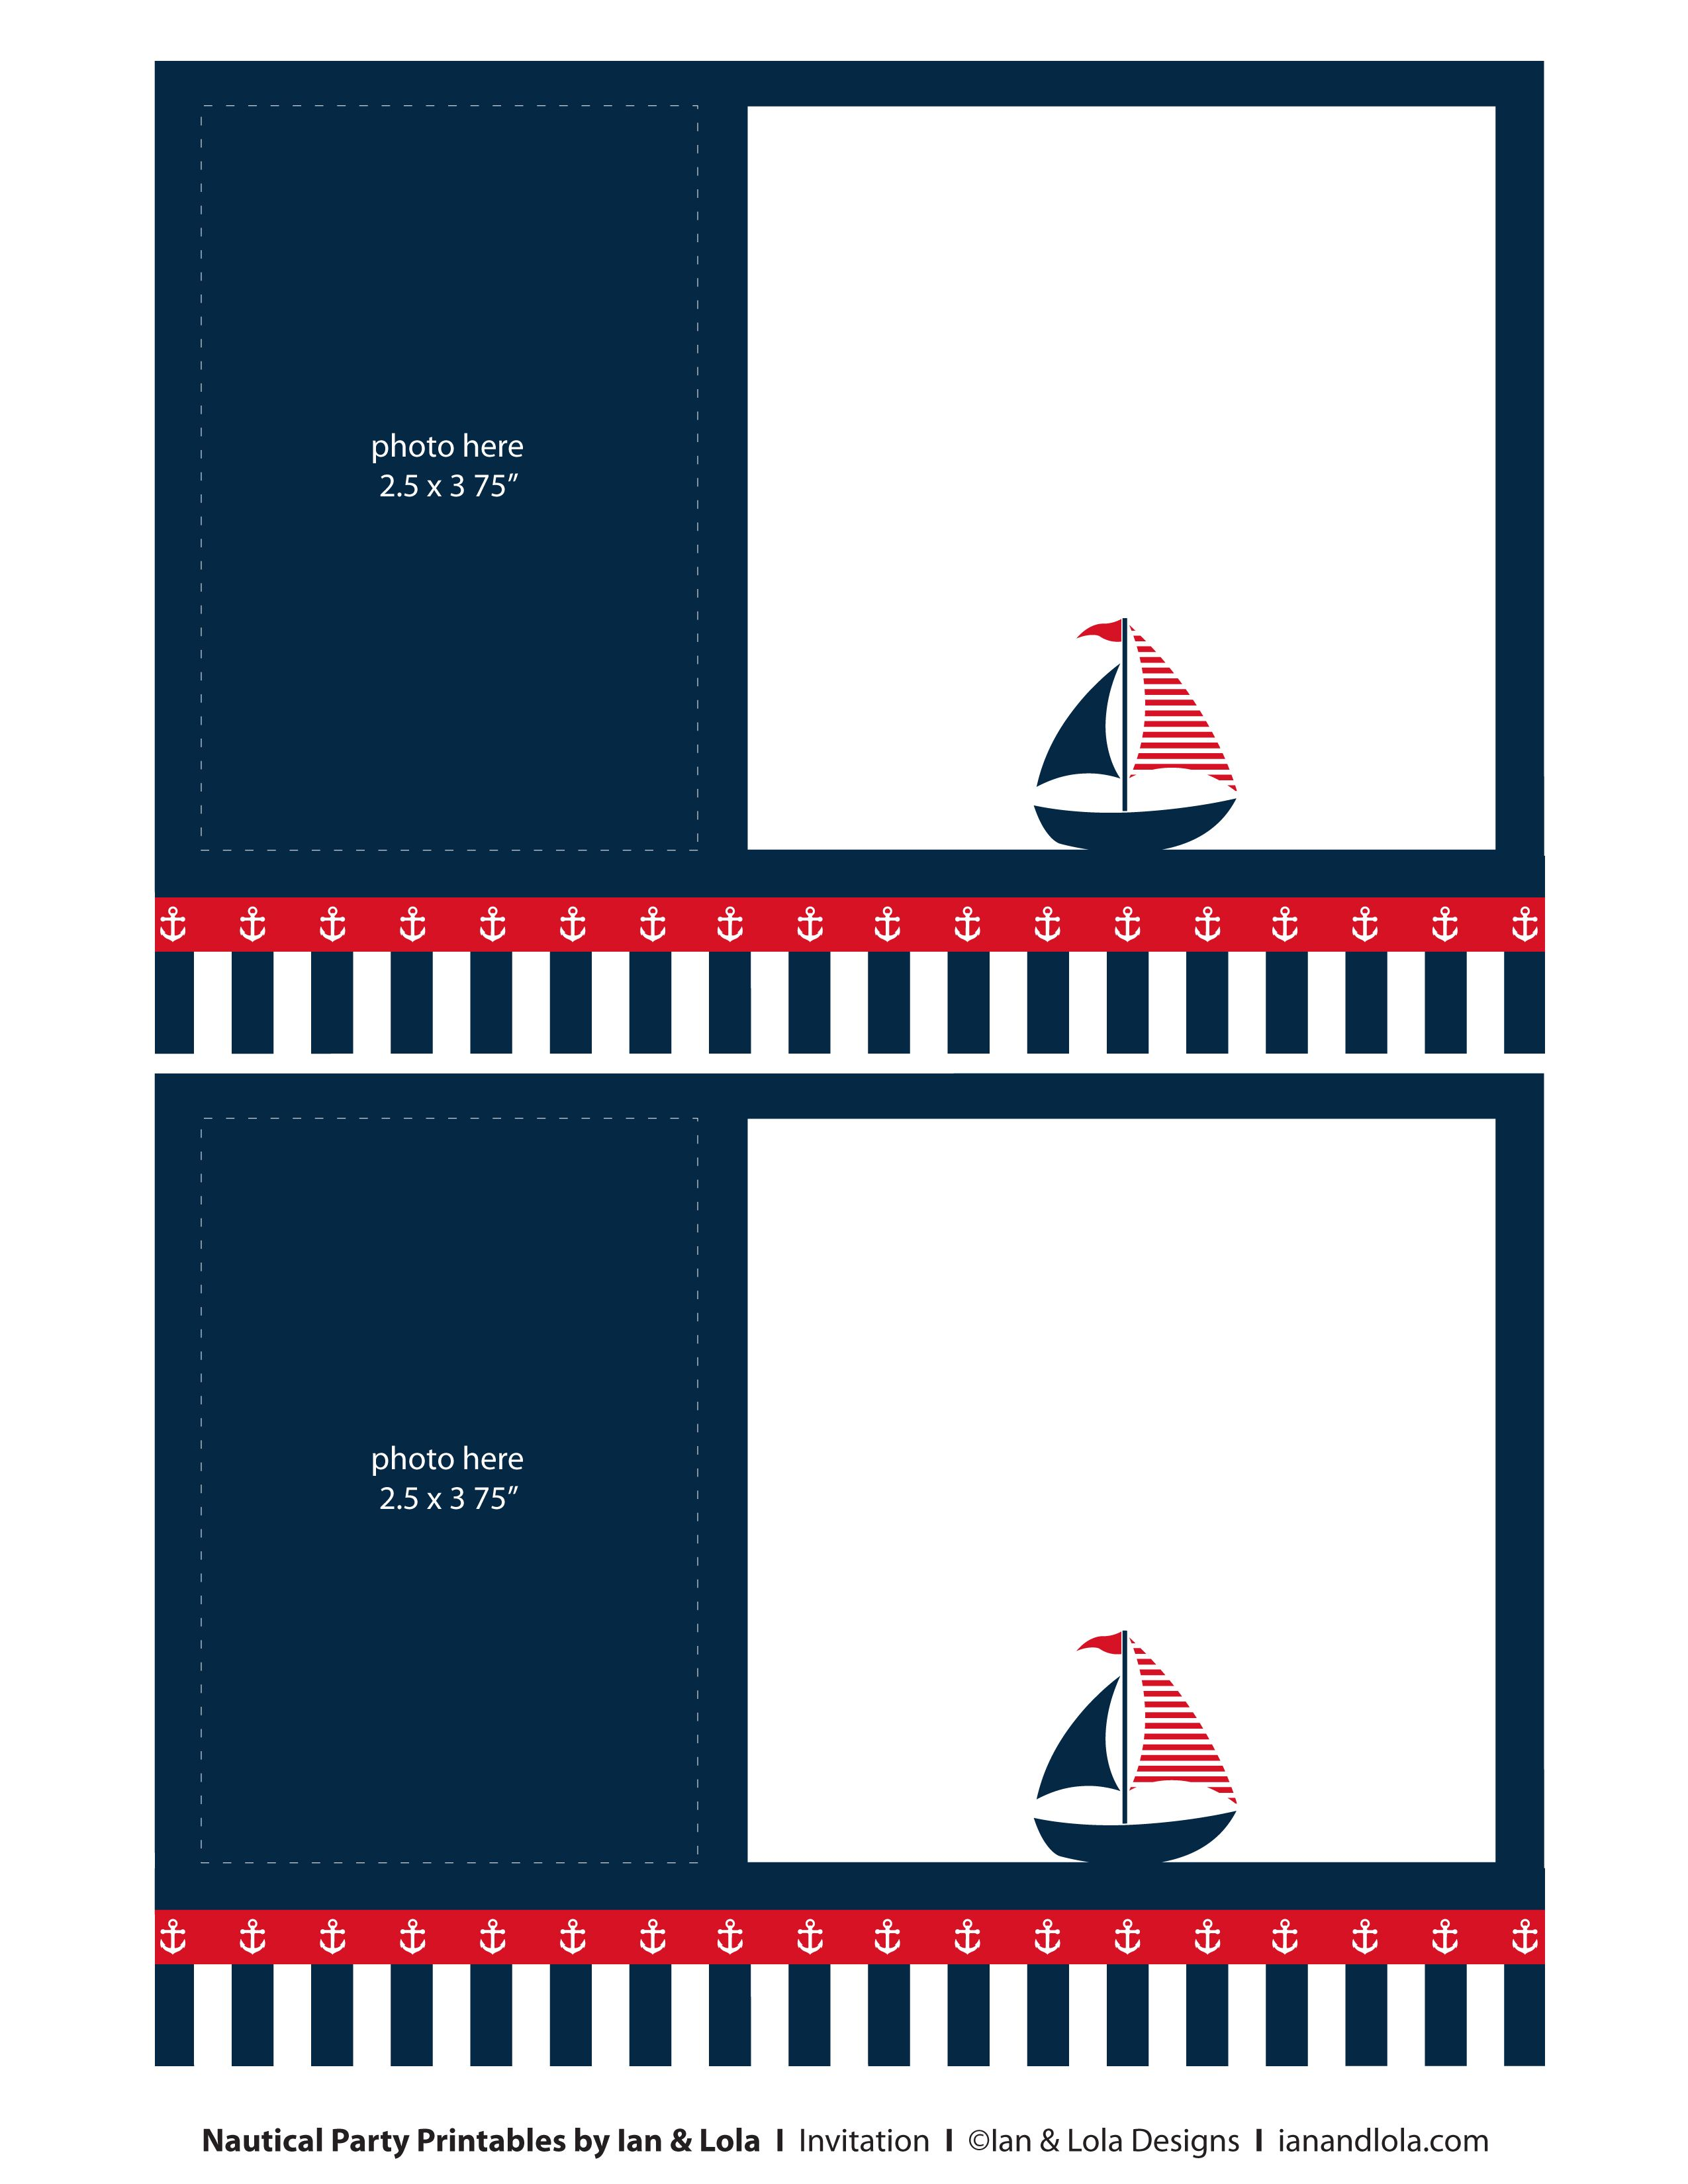 Free Nautical Party Printables from Ian Lola Designs Nautical